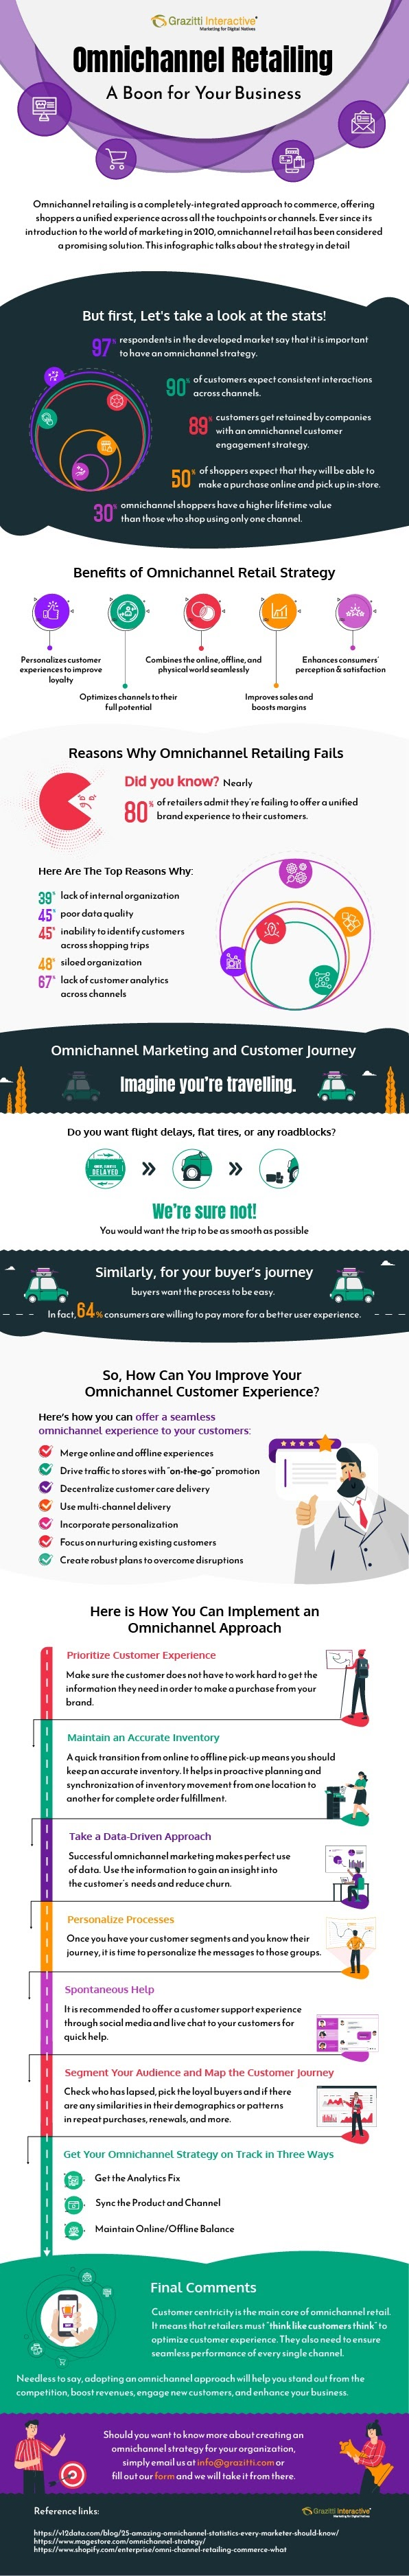 Omnichannel Retailing- A Boon for Your Business #infographic